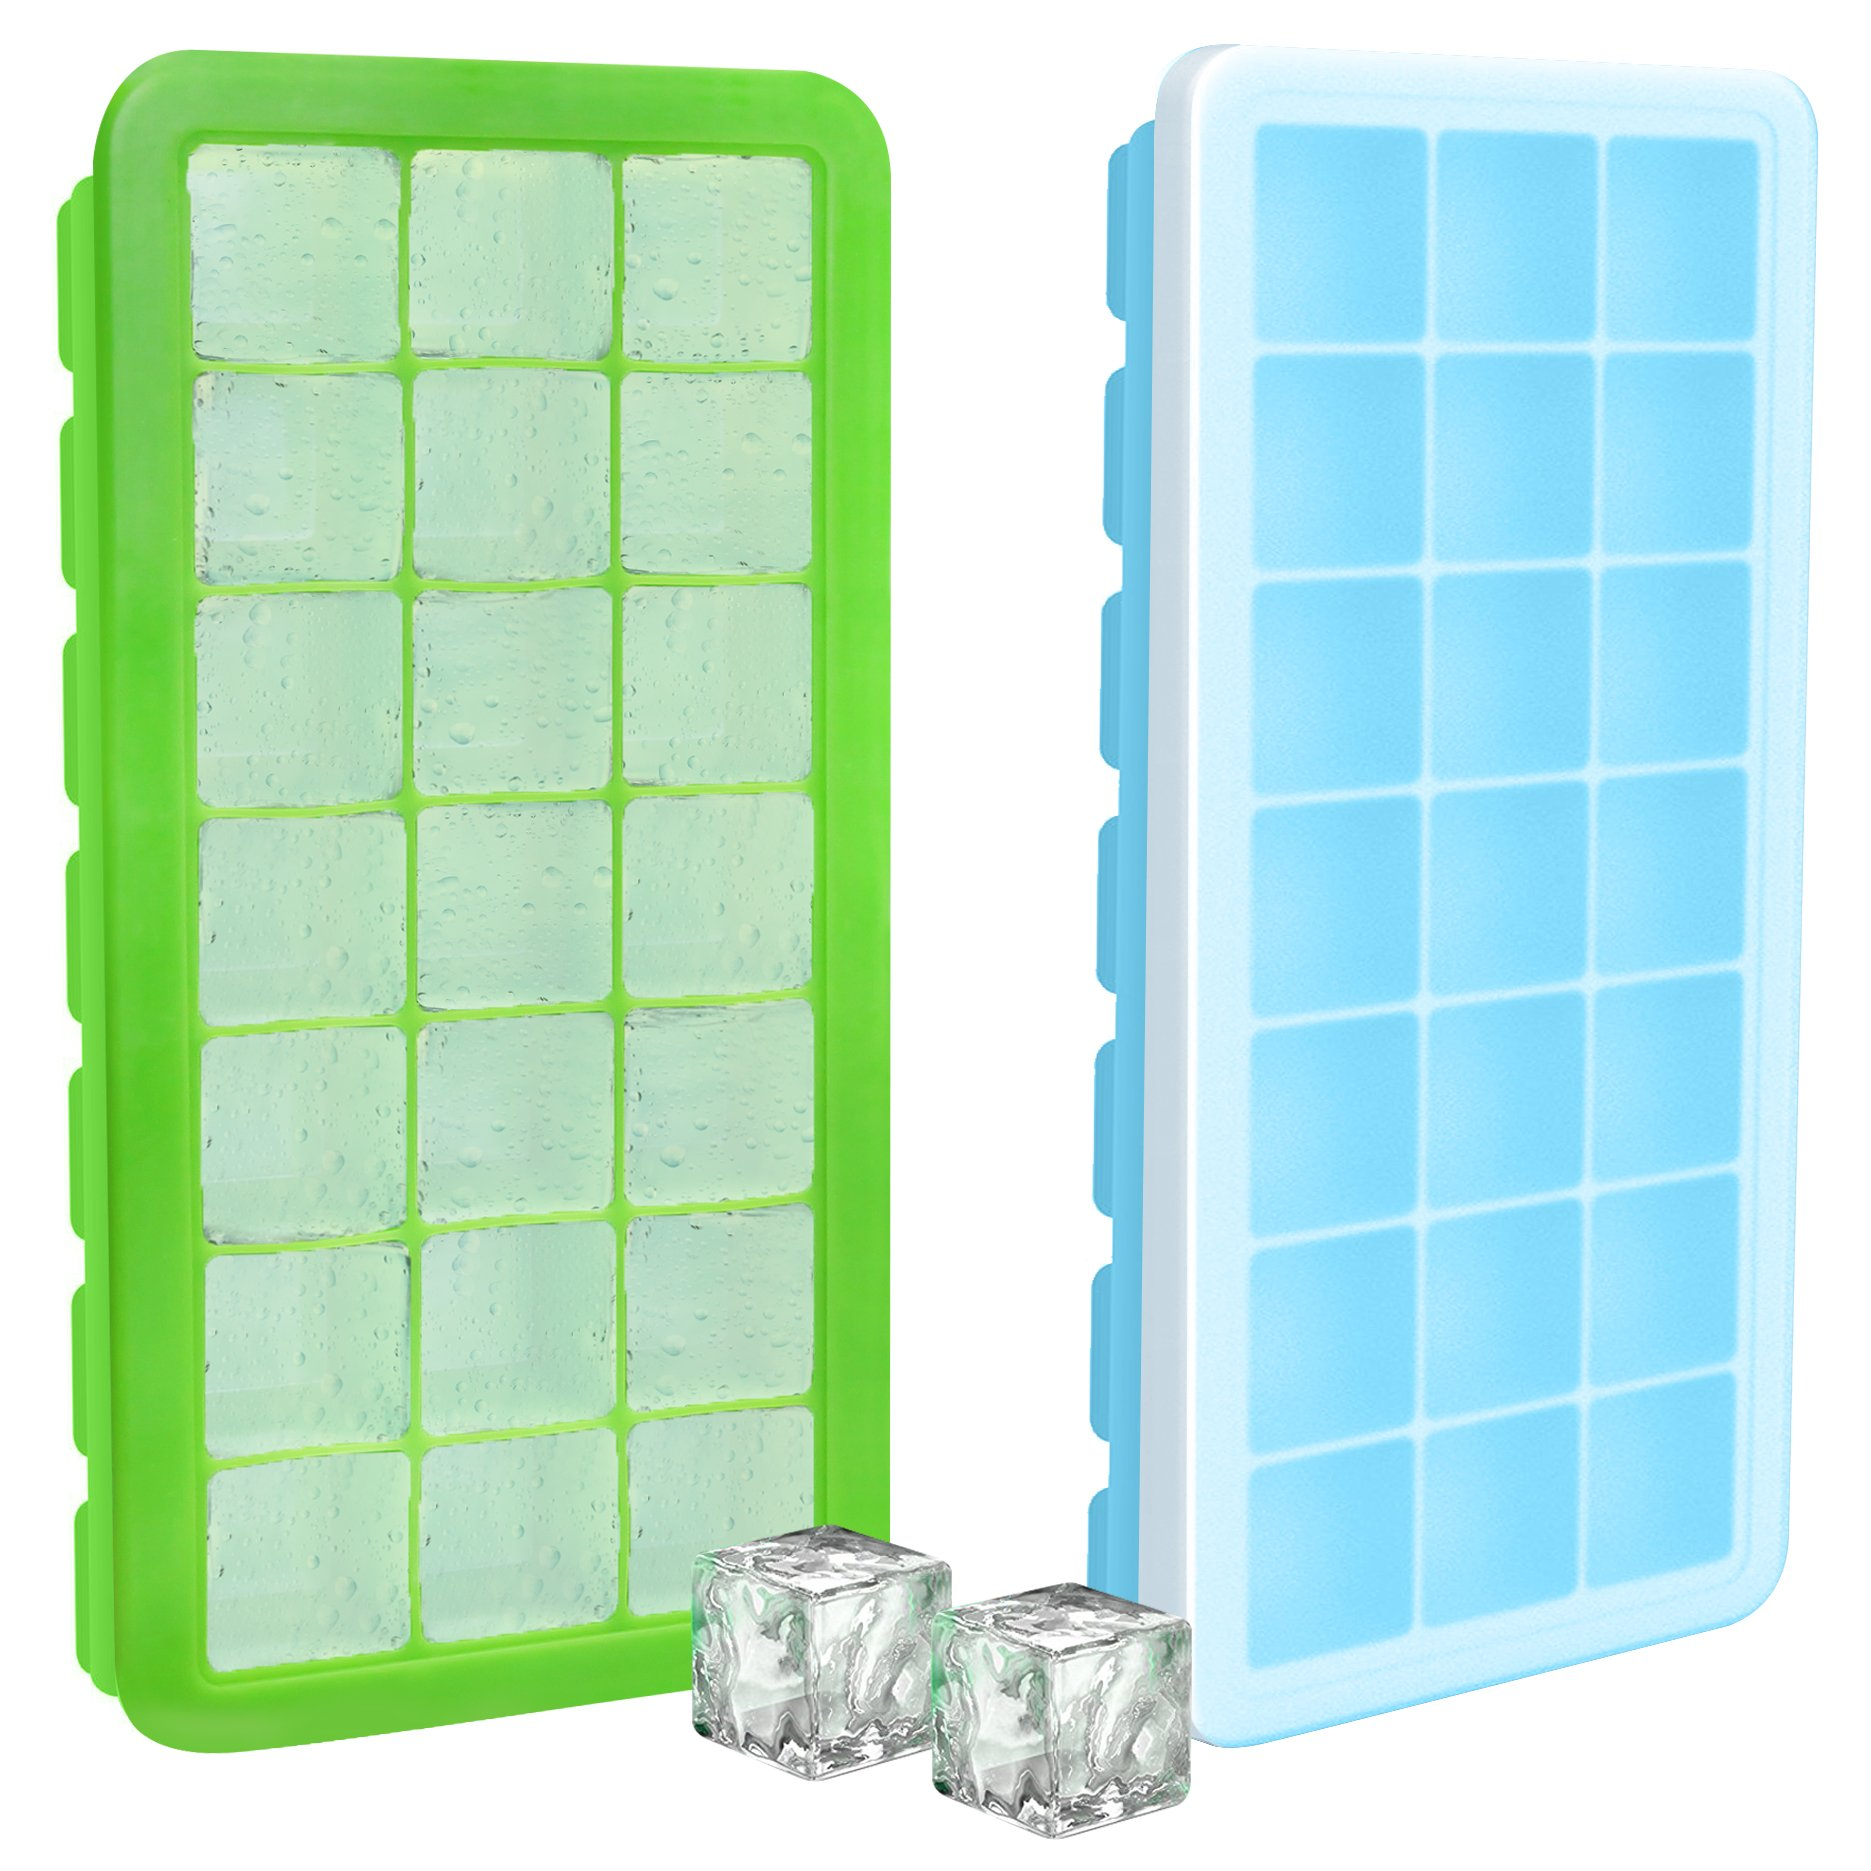 Utopia Home Food Grade Green & Blue Silicone Ice Cube Tray Set - Set of 2 - Total of 42 Ice Cube Molds